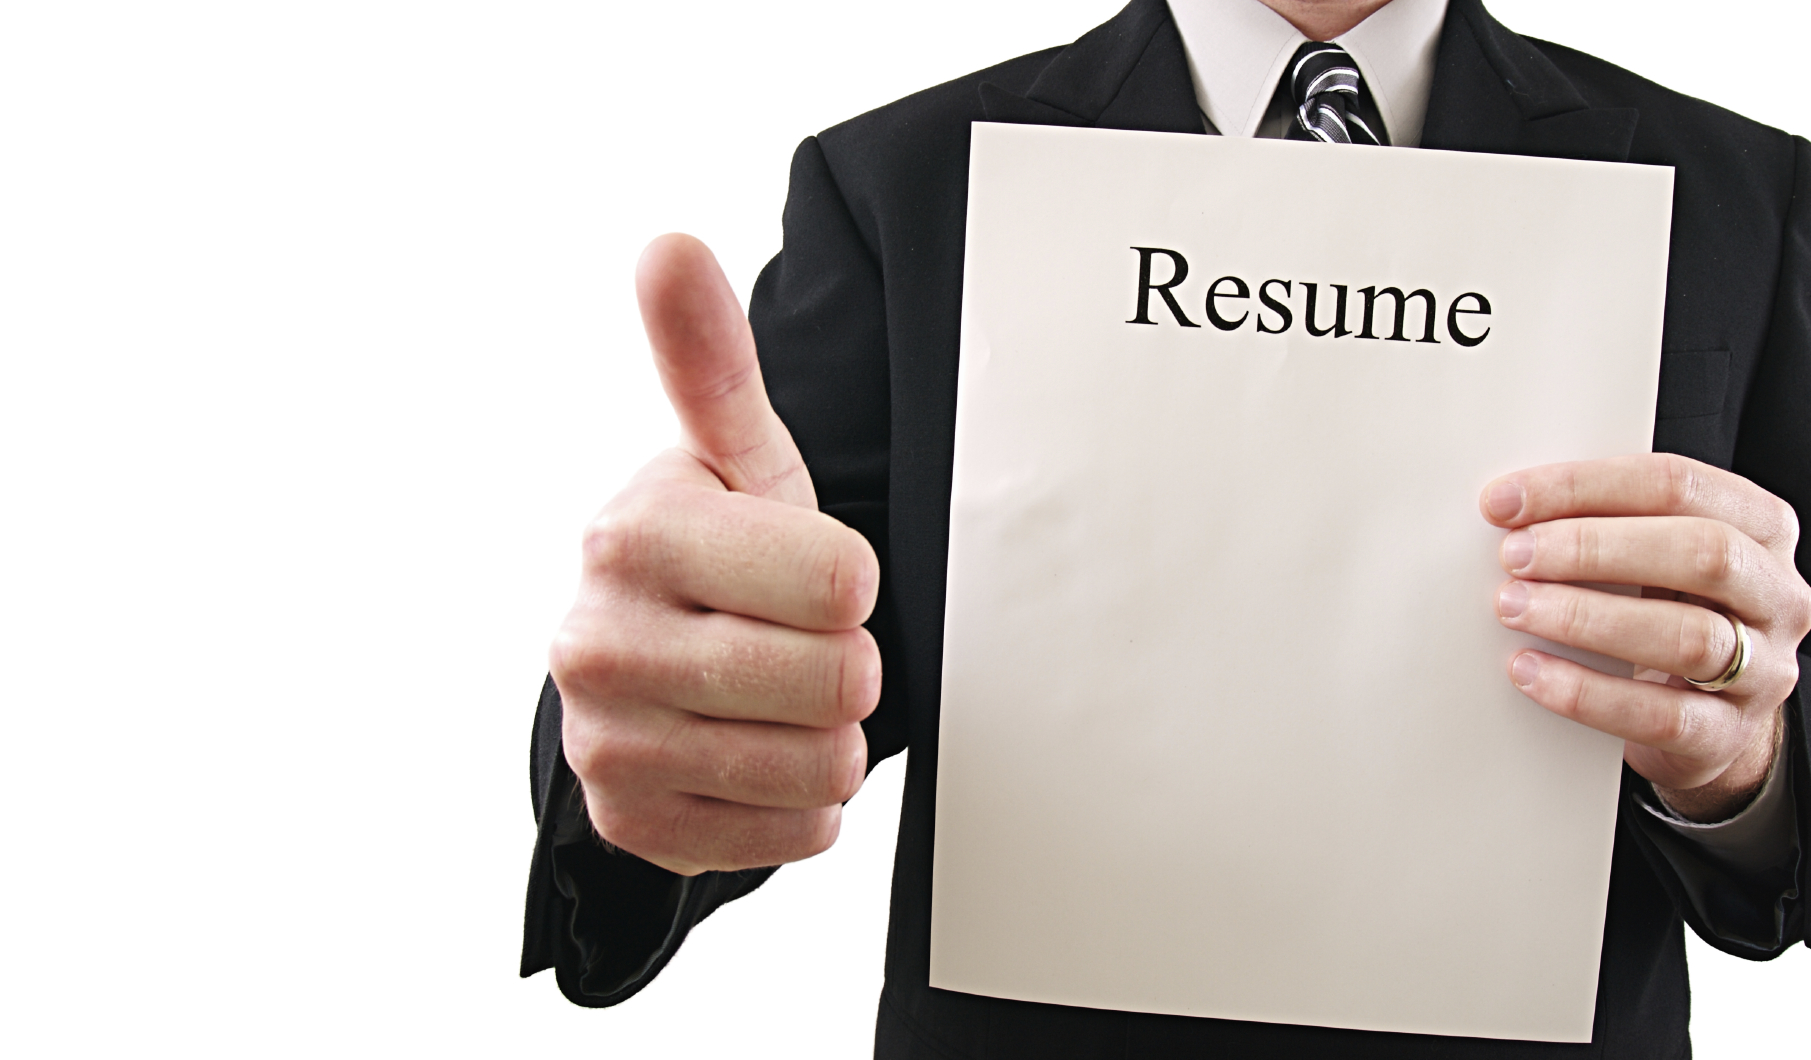 Quotes about Resumes (82 quotes)